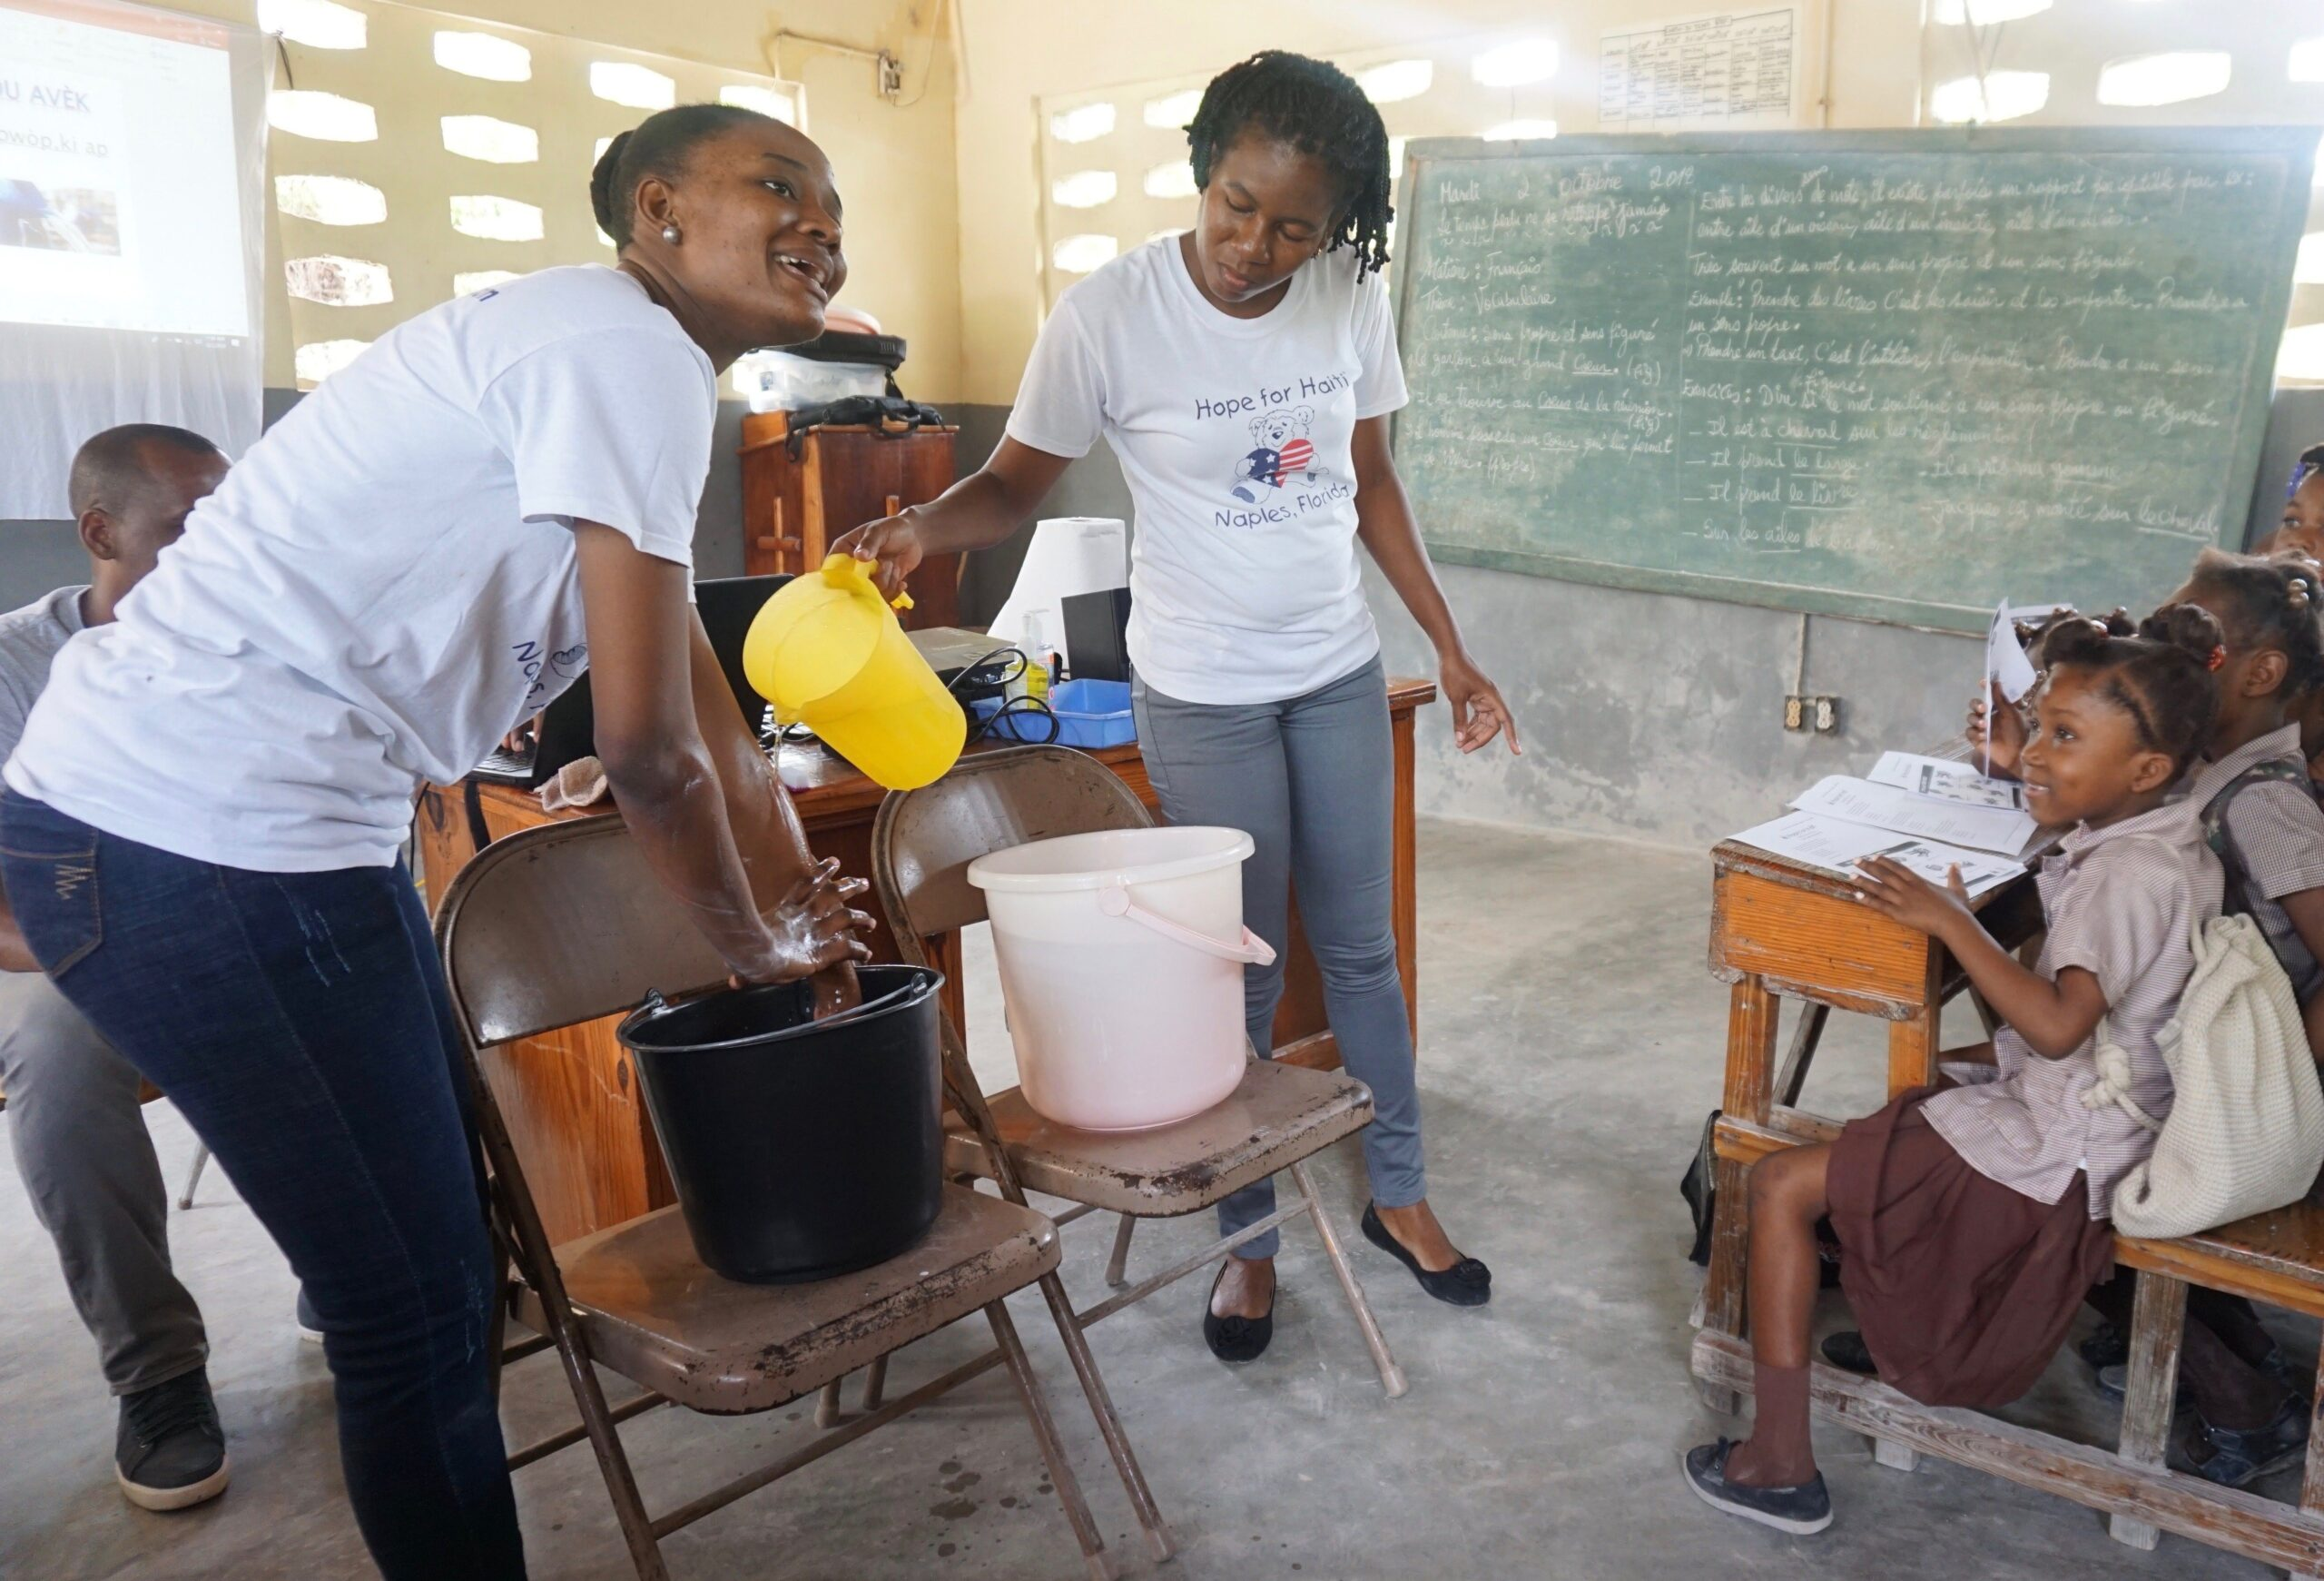 The Five Things We Learned About Health and Hygiene in Haiti